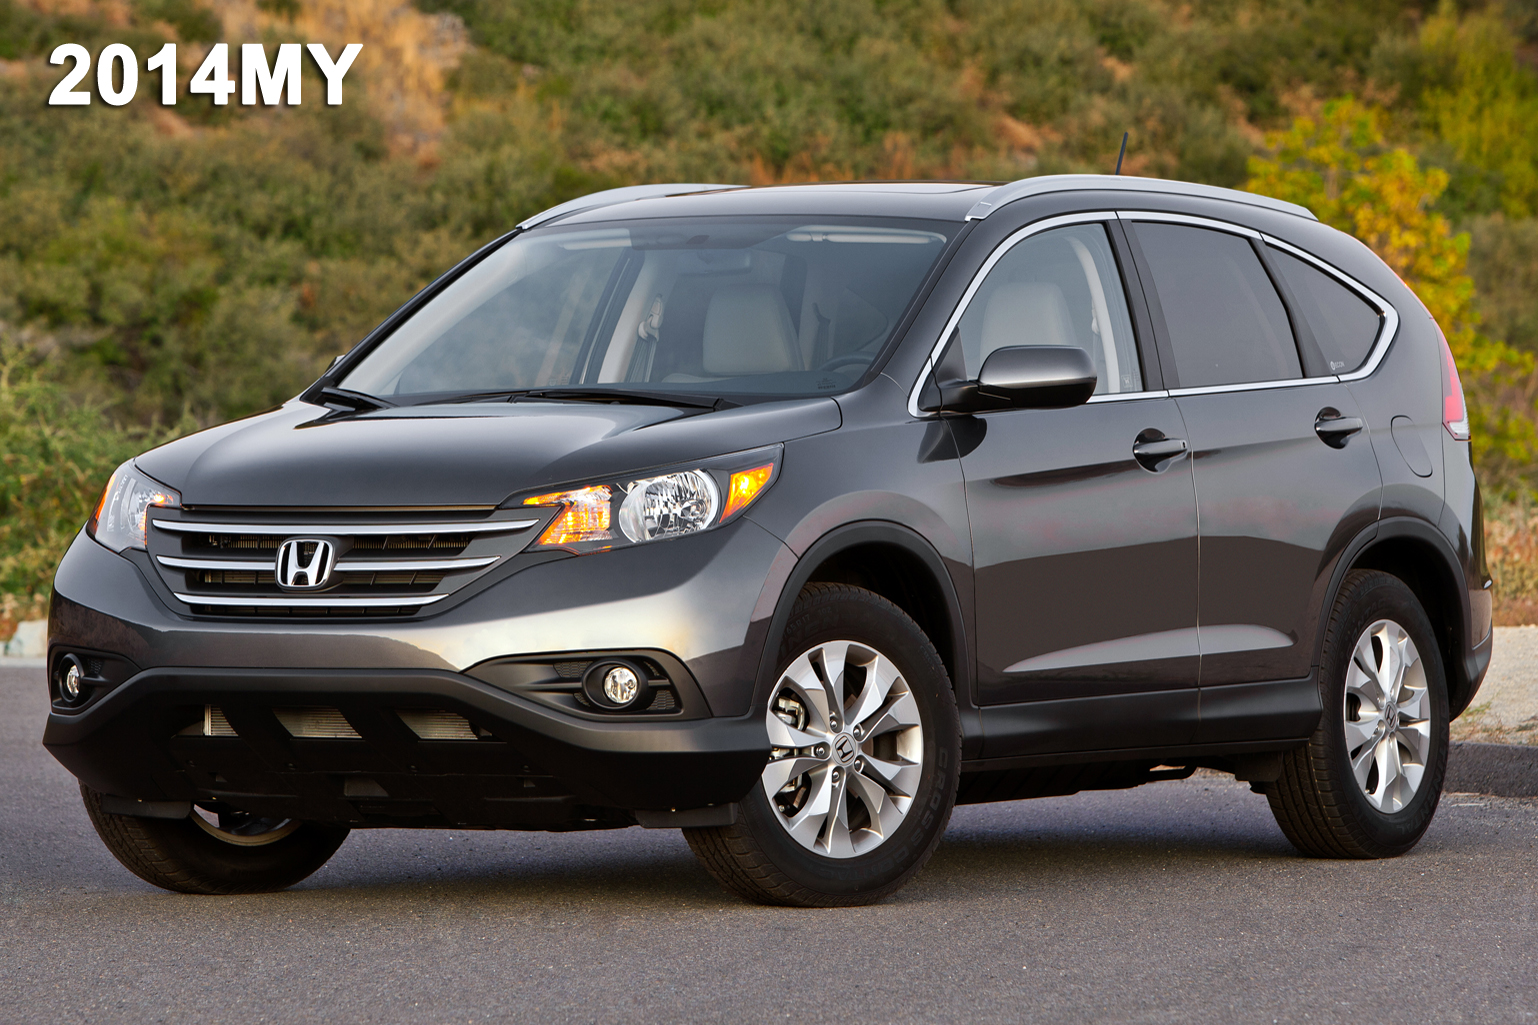 2015 Honda Cr V Facelift Photo Leaks Out